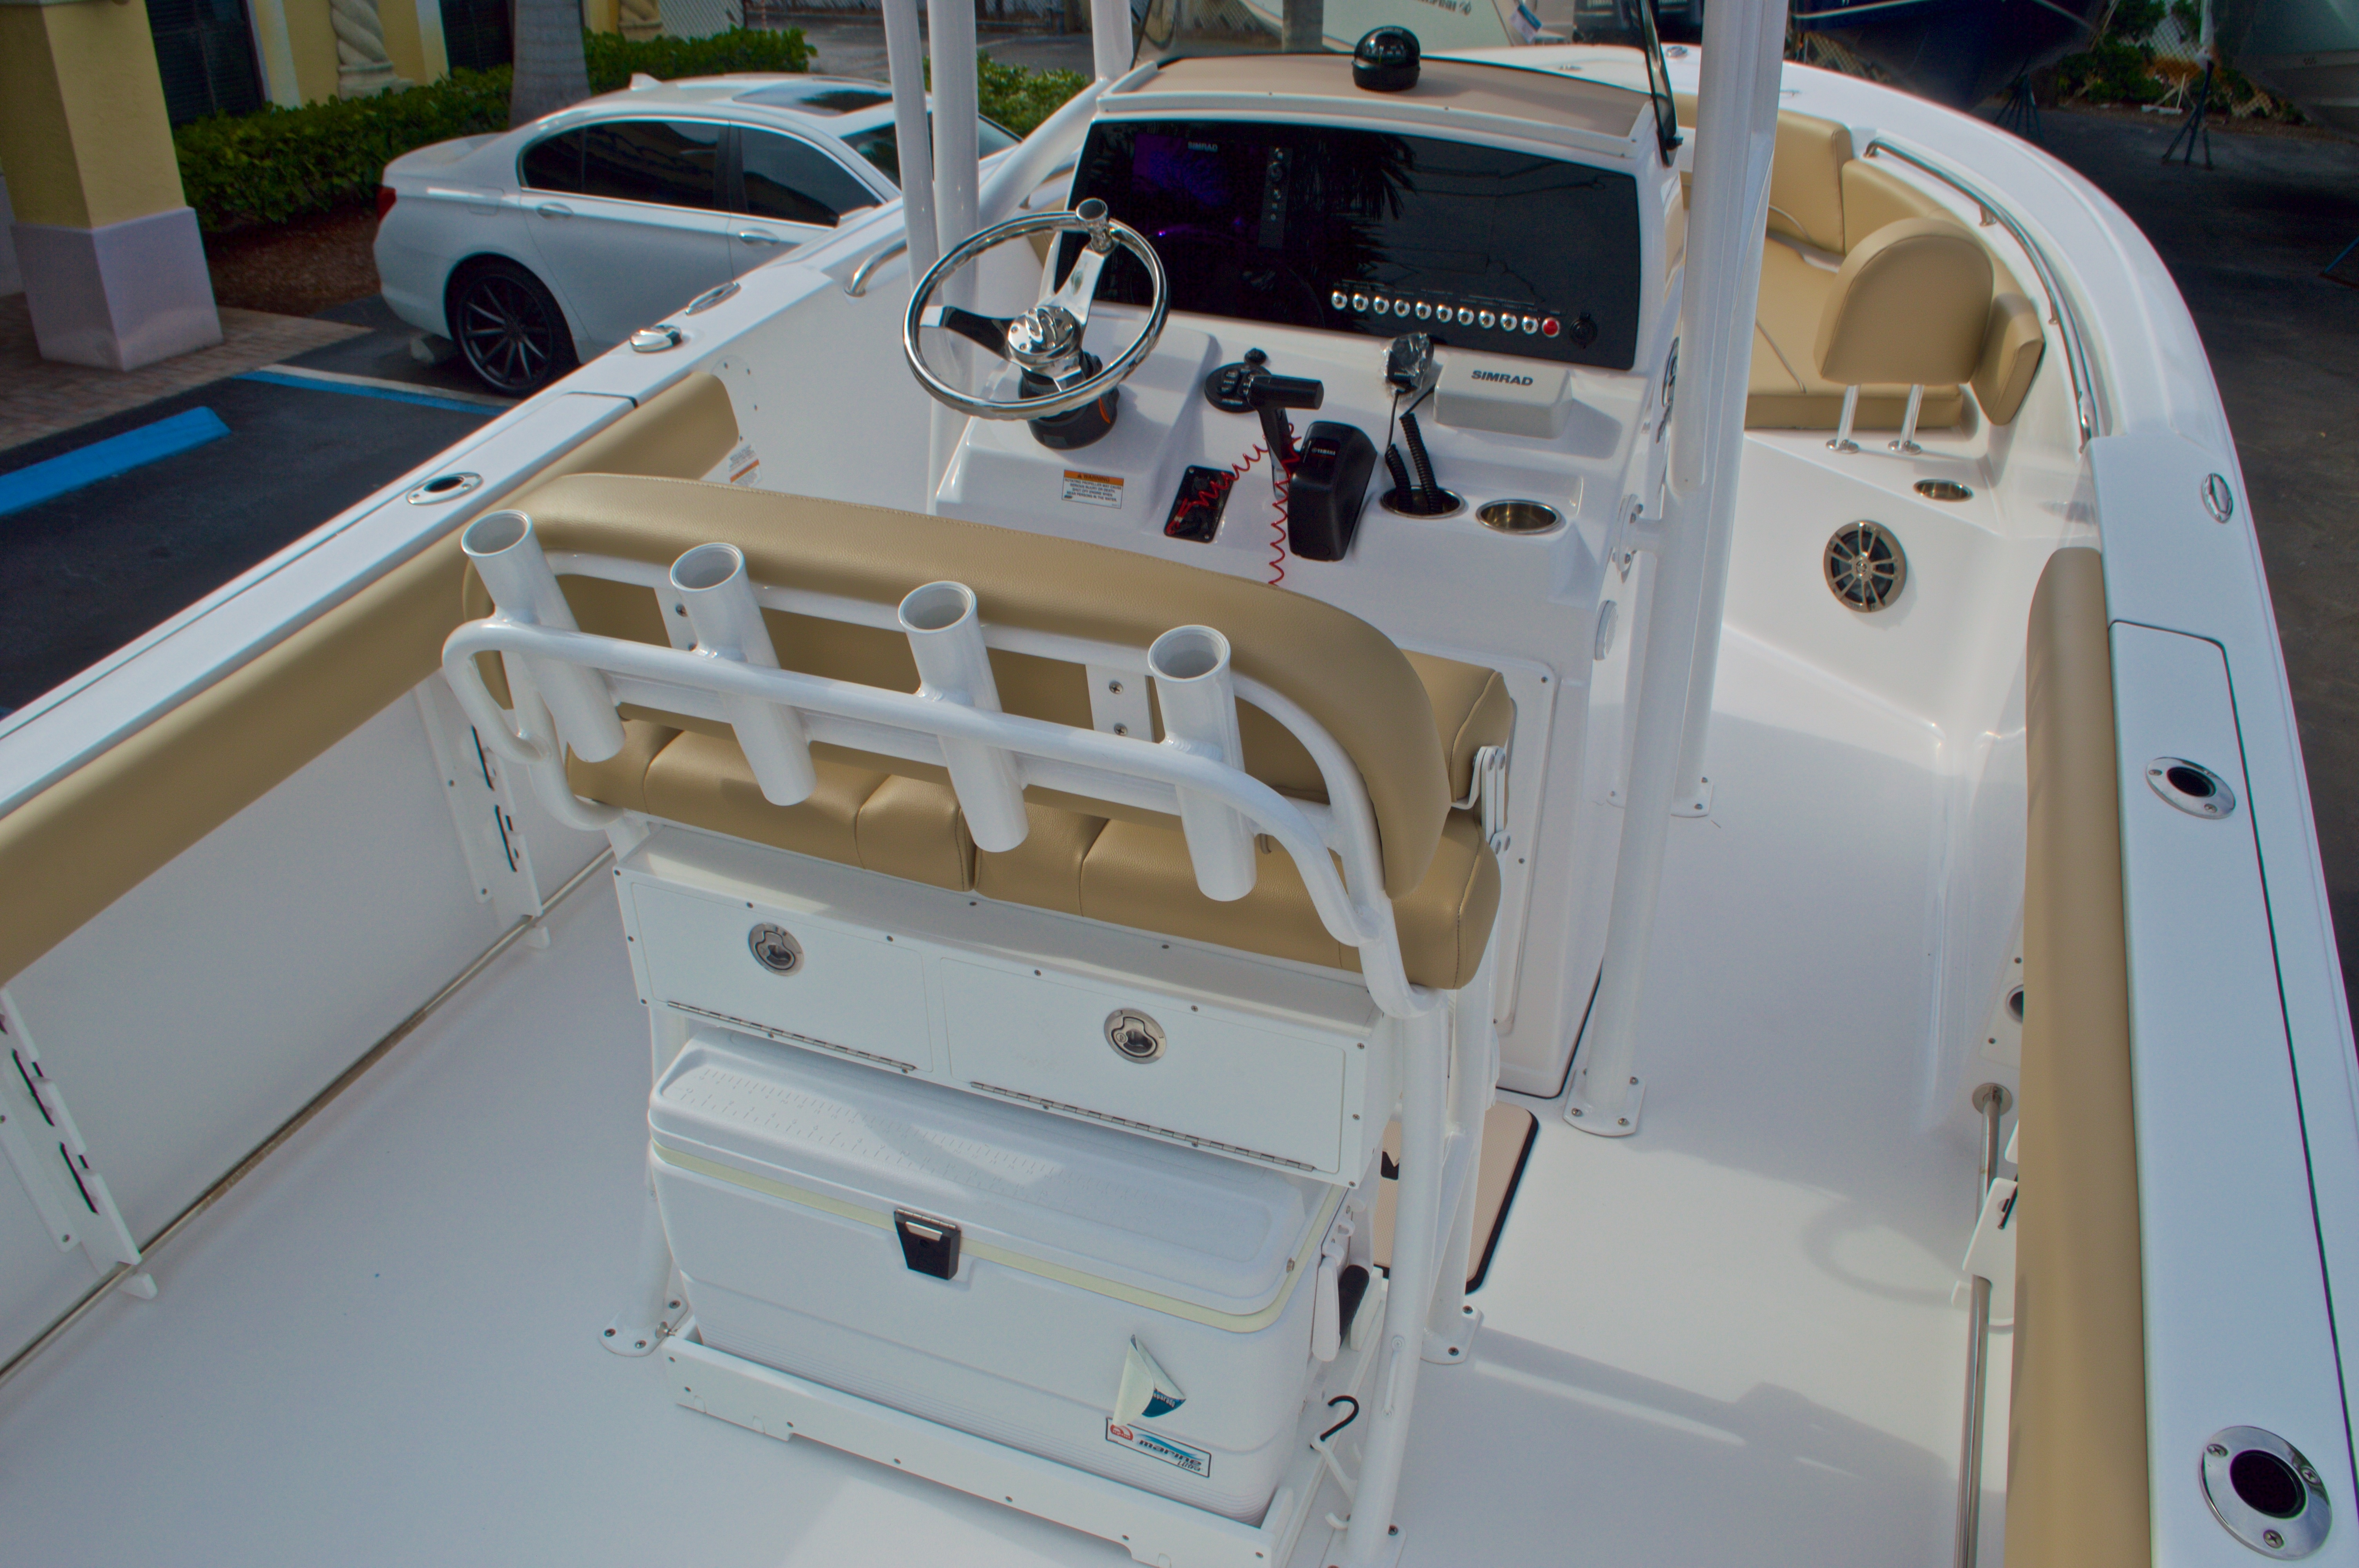 Thumbnail 11 for New 2016 Sportsman Open 232 Center Console boat for sale in Vero Beach, FL